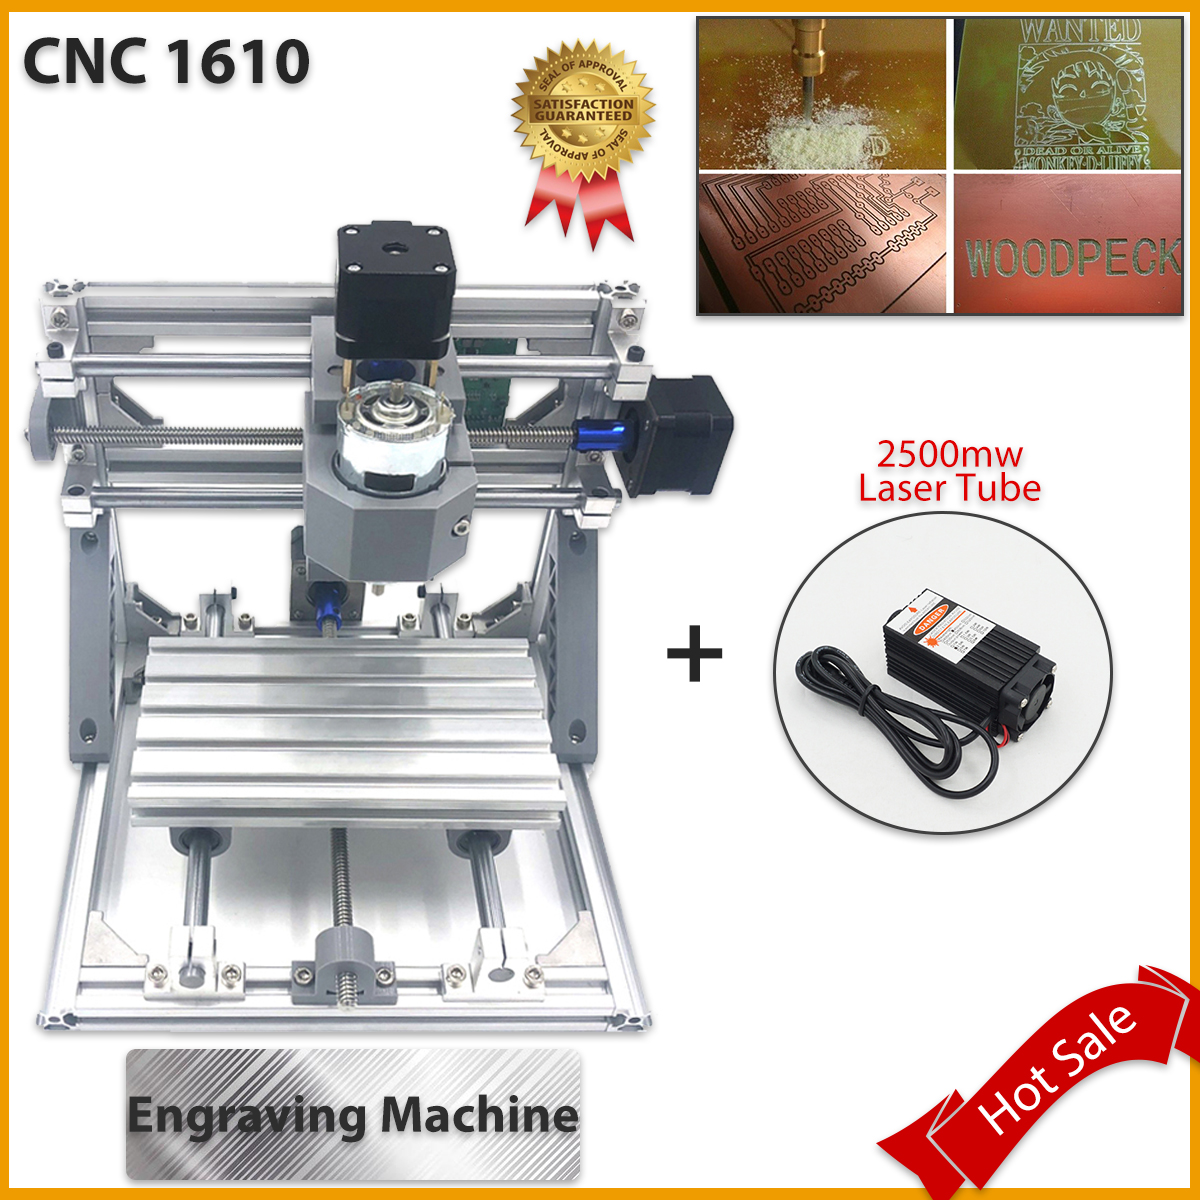 CNC 1610 2500mw Laser Tube Wood Router cnc milling machine cnc kit Wood Router laser engraving machine цена